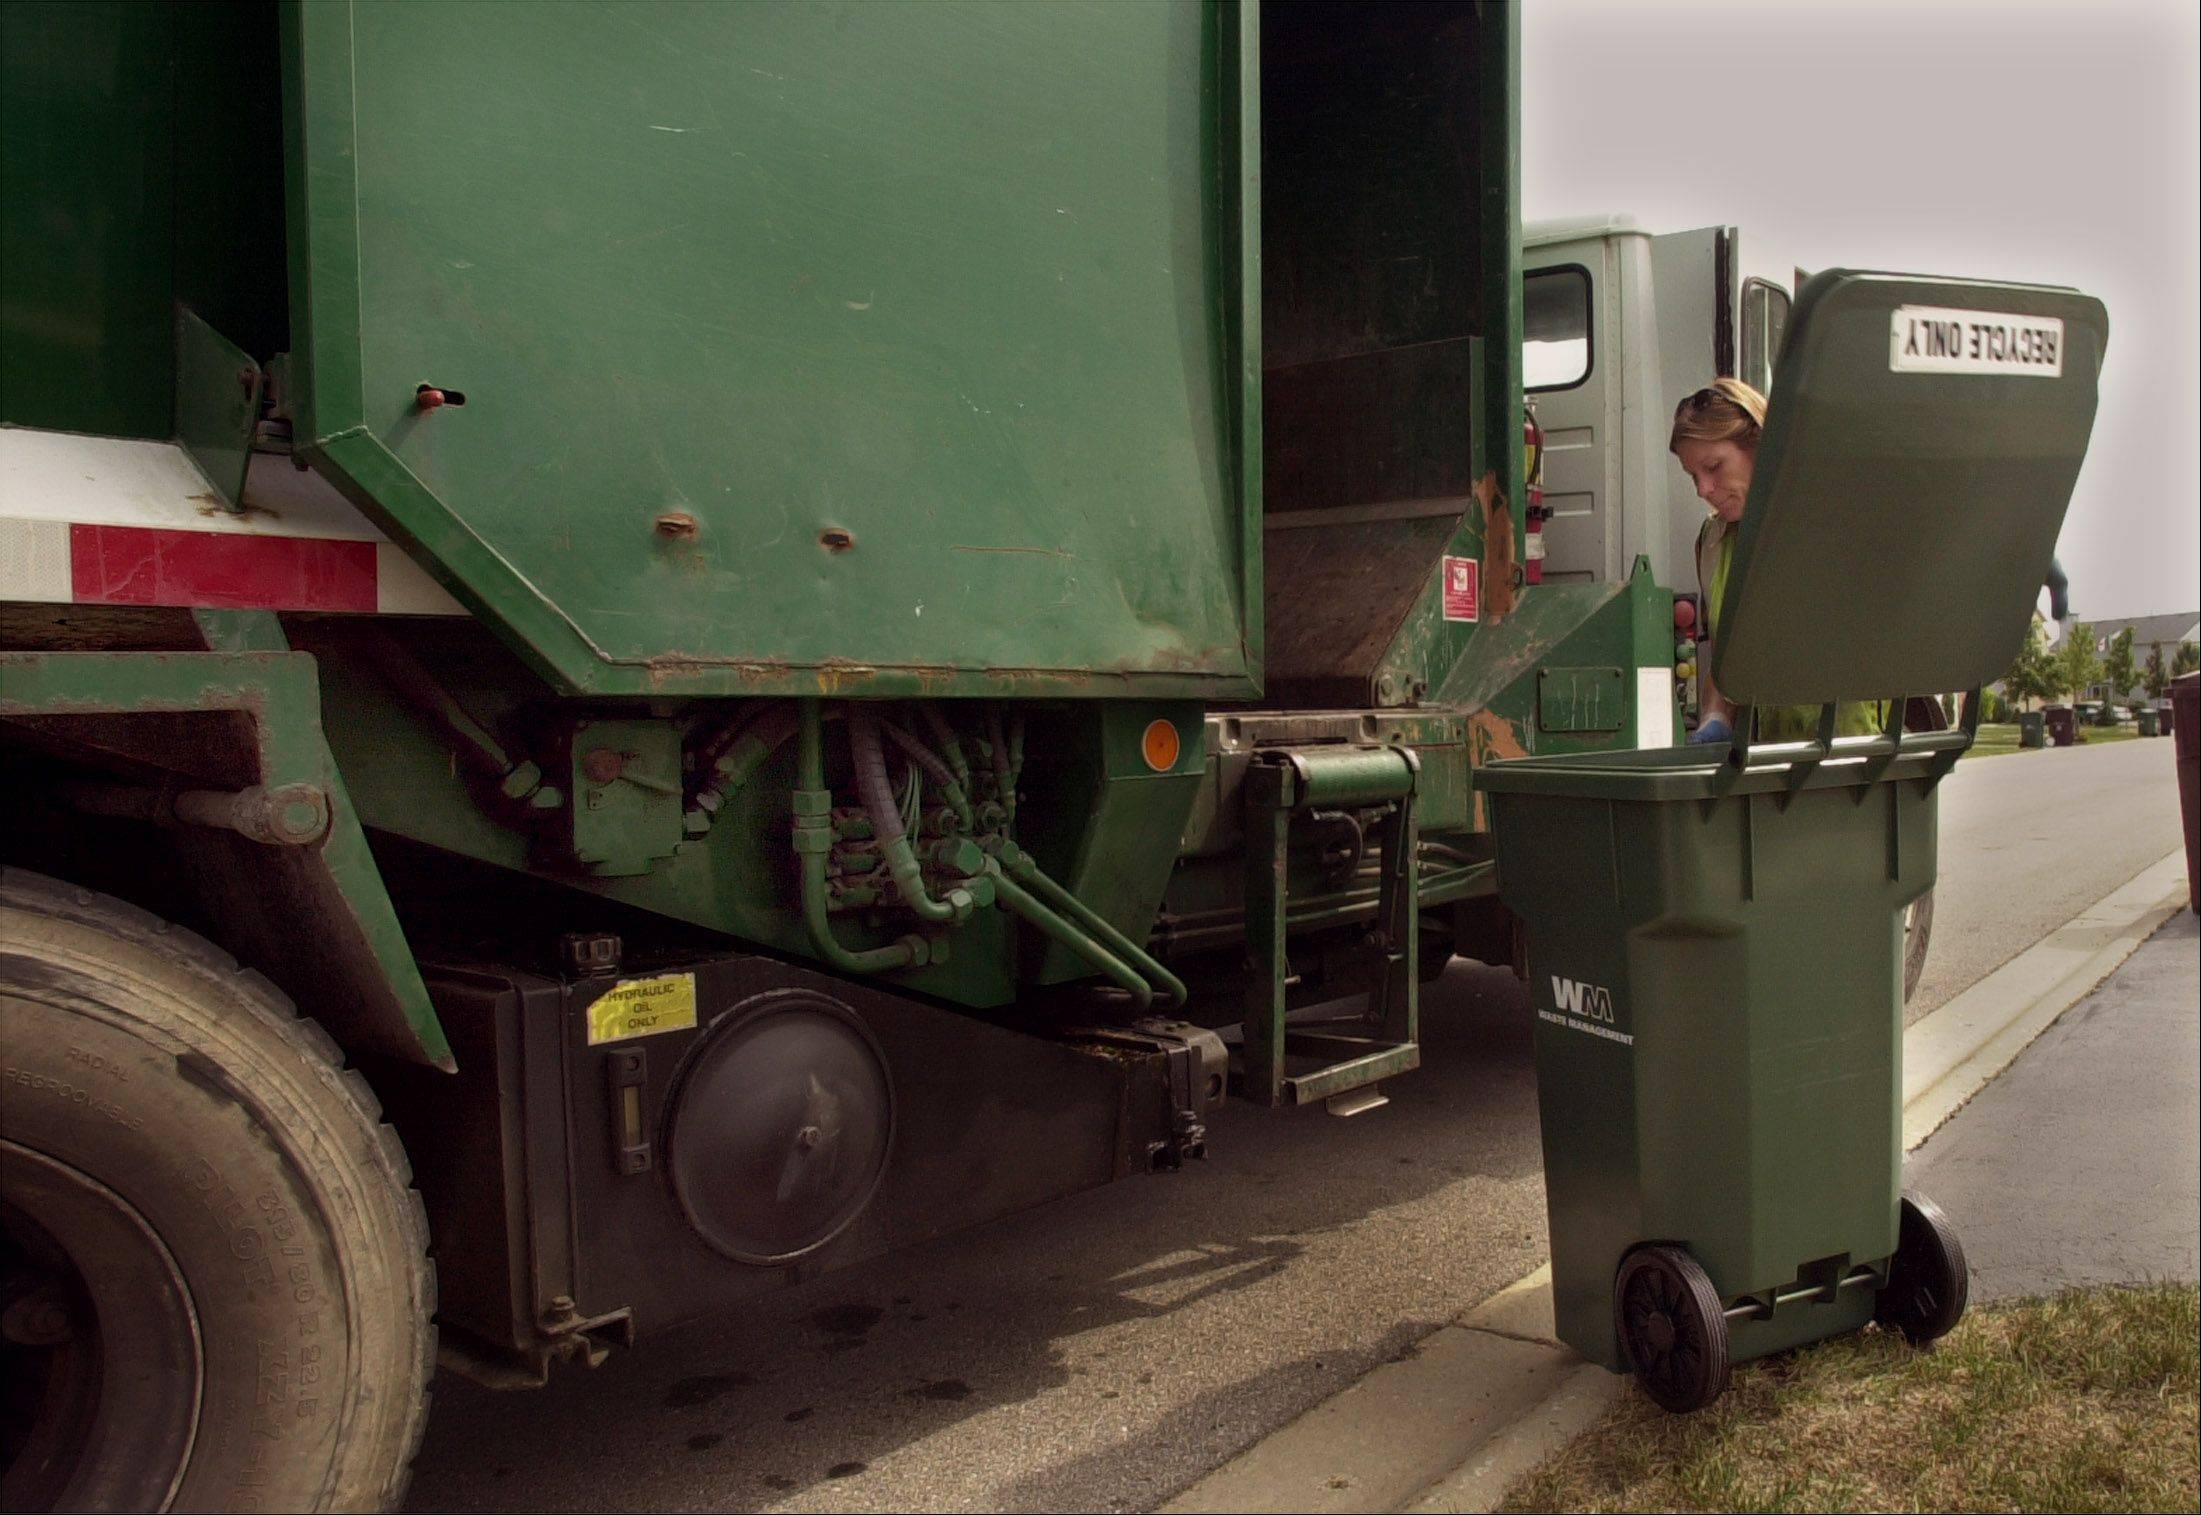 Recycling coming to unincorporated Lake County